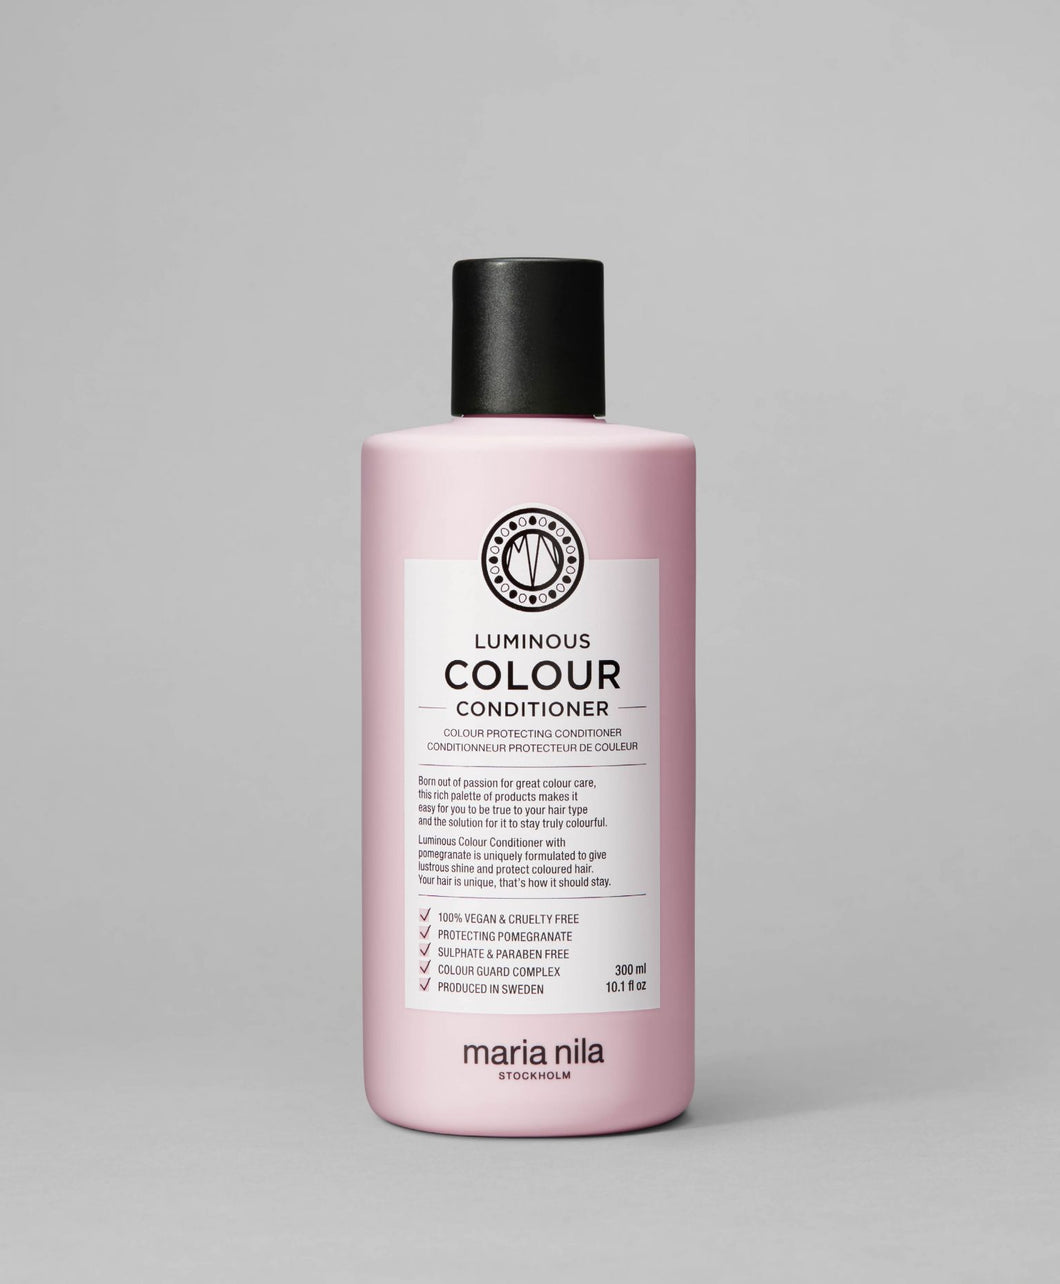 Luminous Color Conditioner